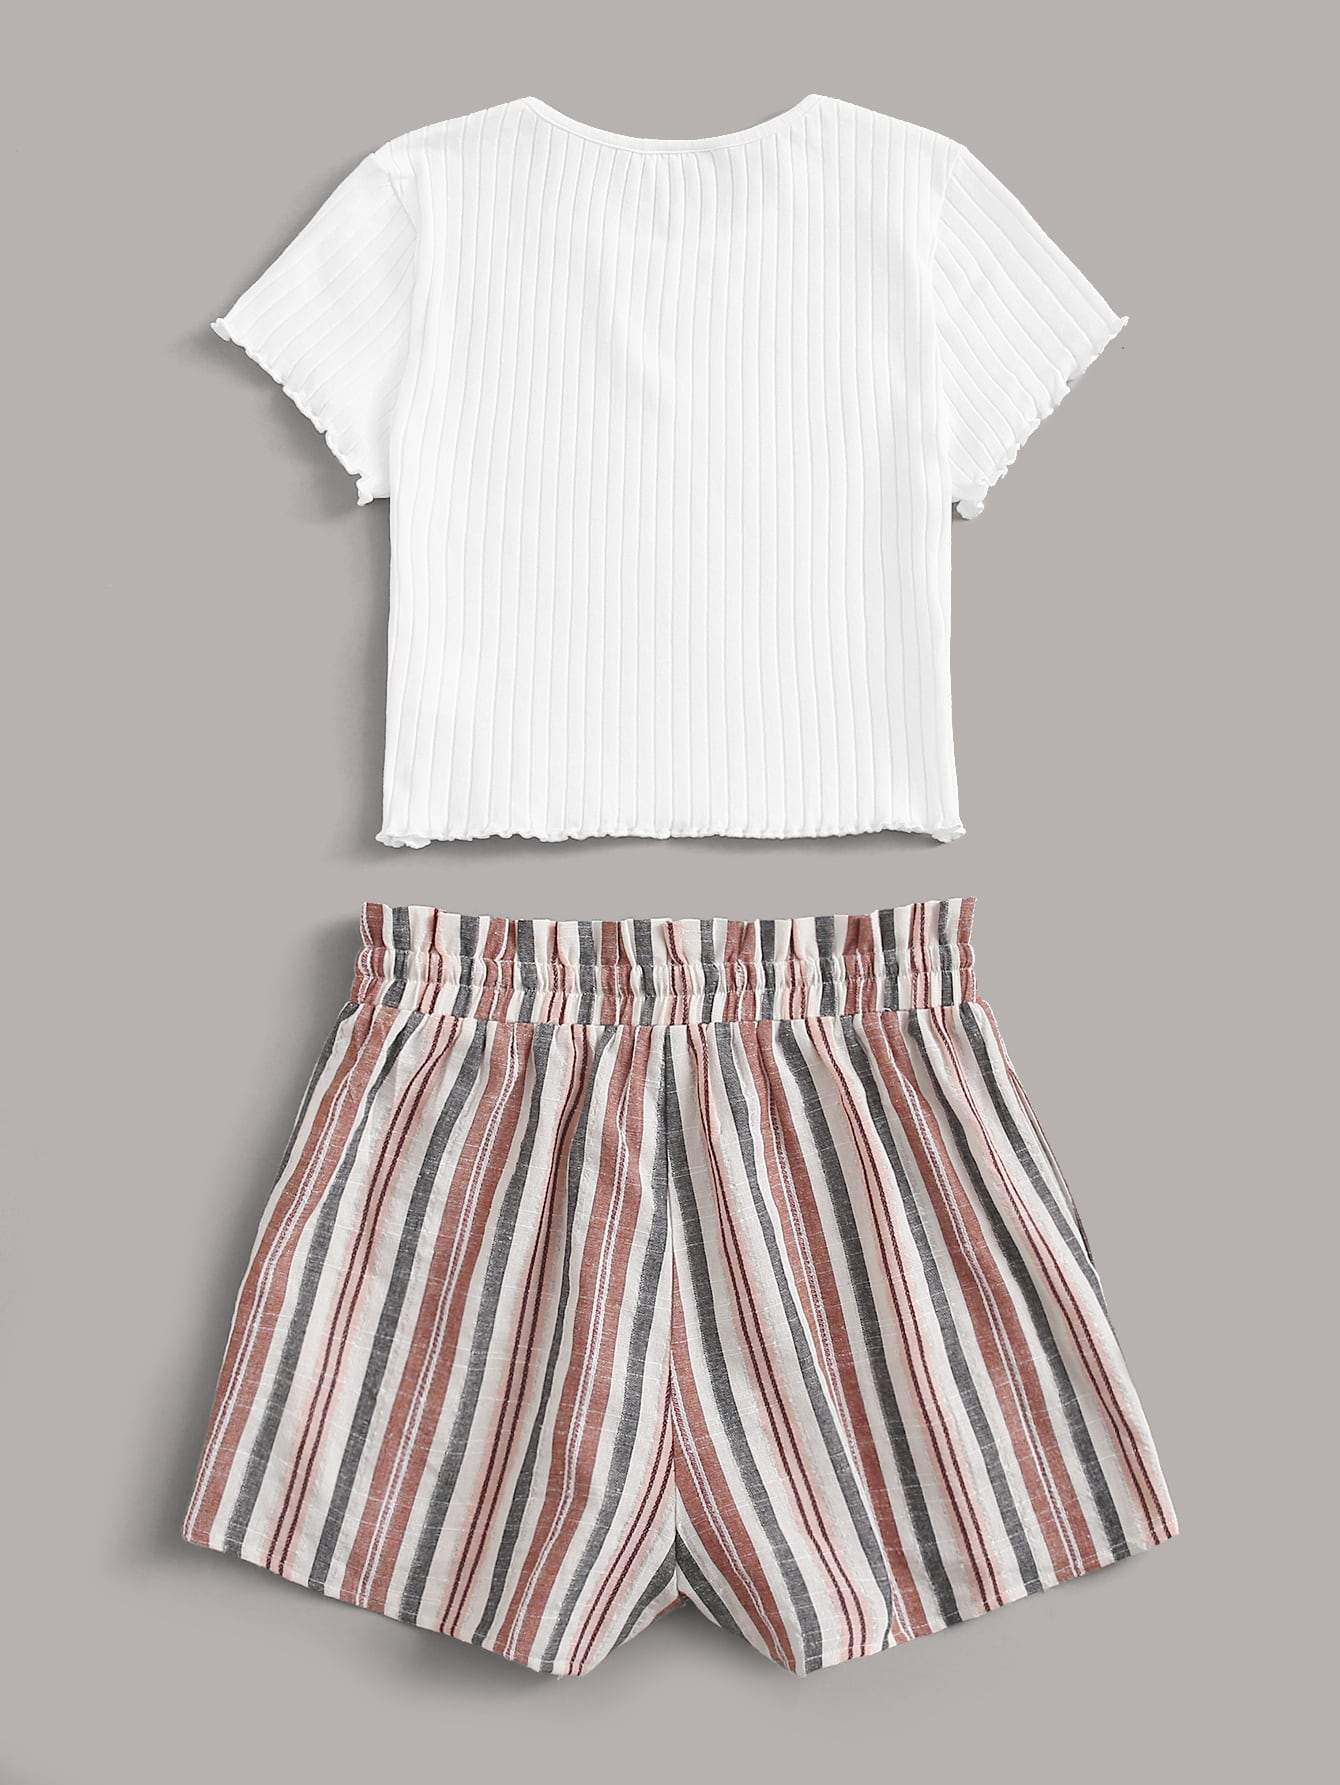 Lettuce Edge Tee and Paperbag Waist Striped Shorts Set - FLJ CORPORATIONS